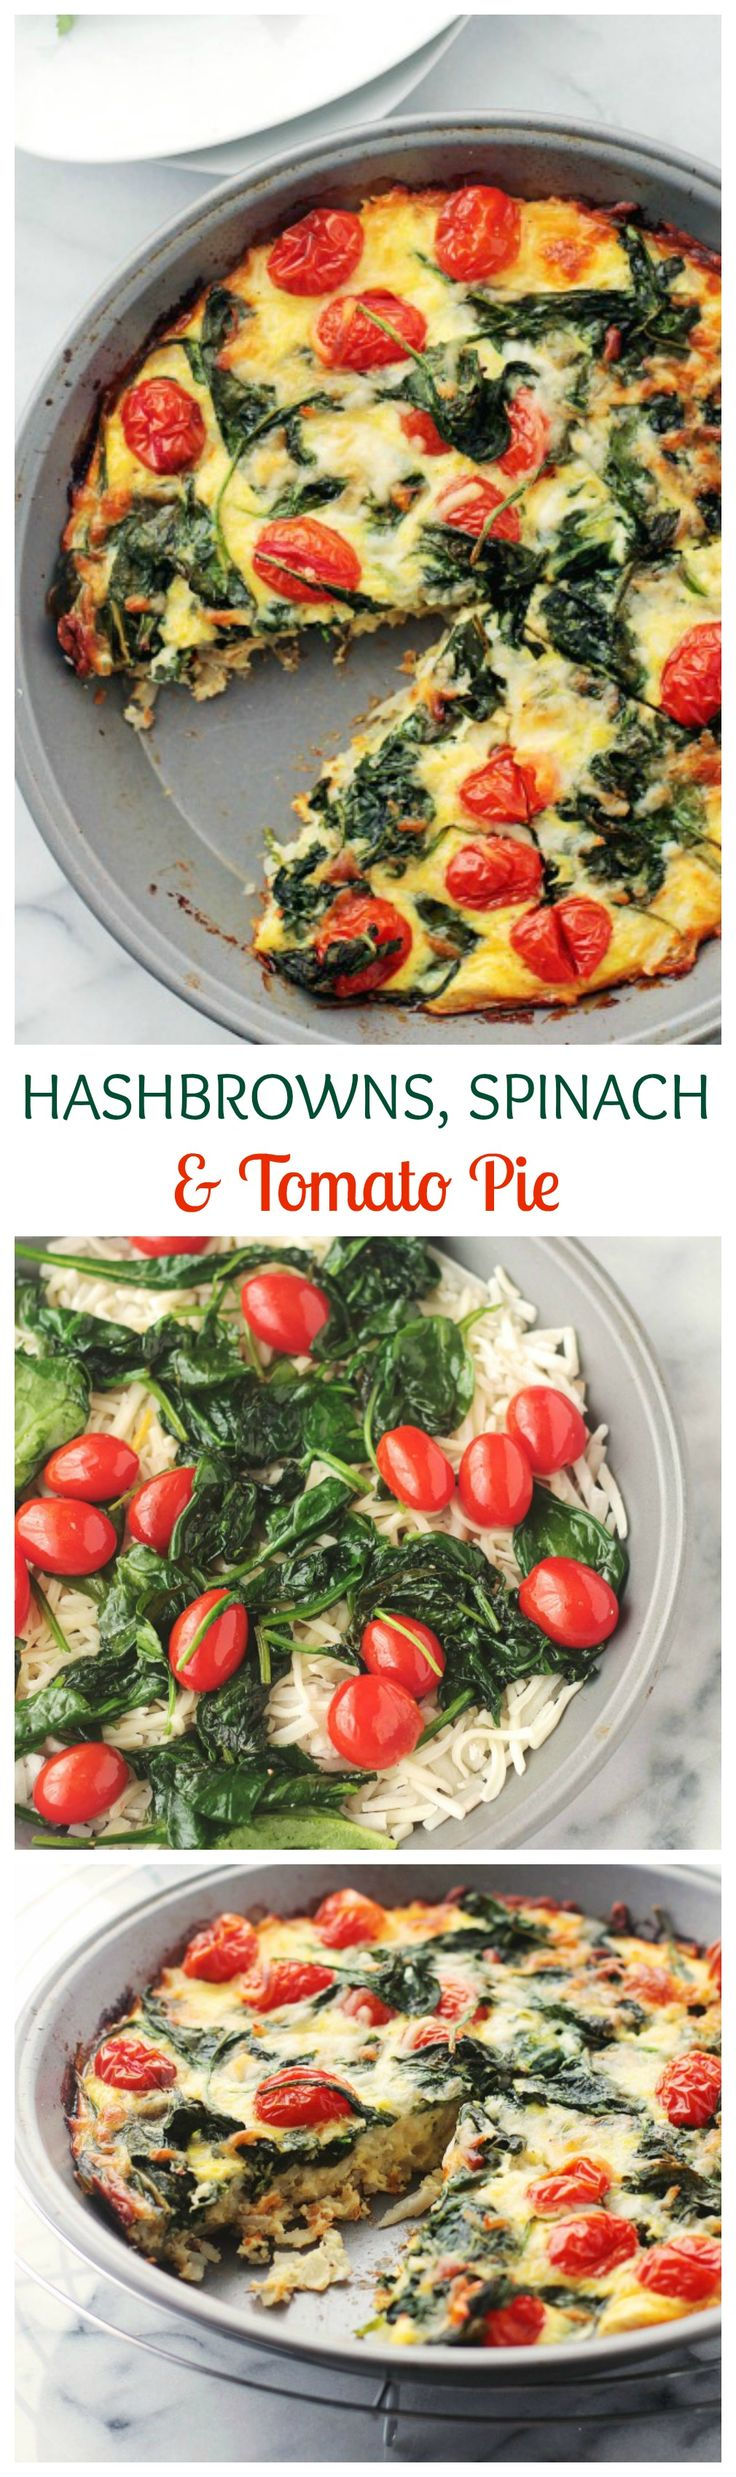 Made with a Hashbrowns Crust, this gluten free, veggie-packed Spinach and Tomato Pie is the perfect addition to your Brunch Menu!